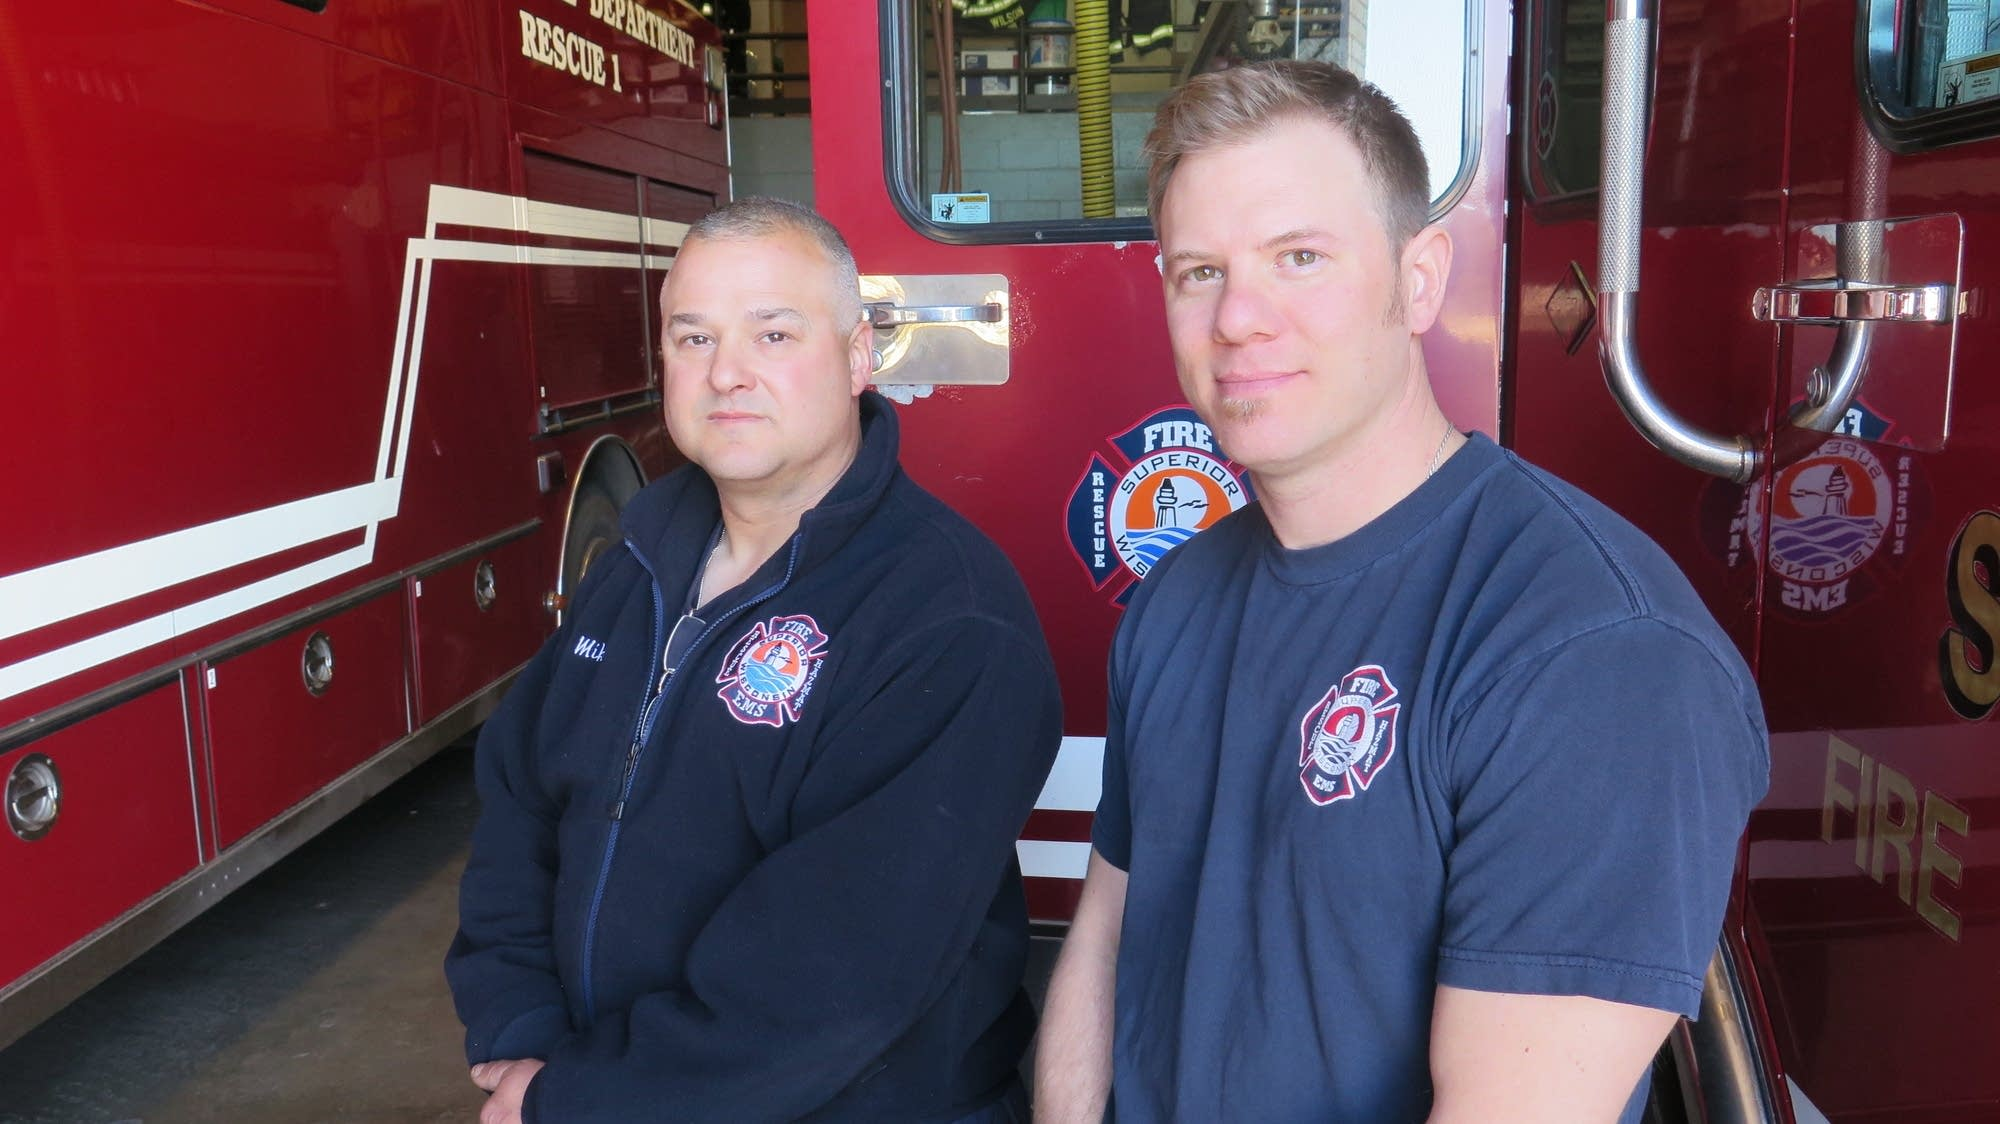 Mike Hoyt and Dan Sertich of the Superior Wis. Fire Department